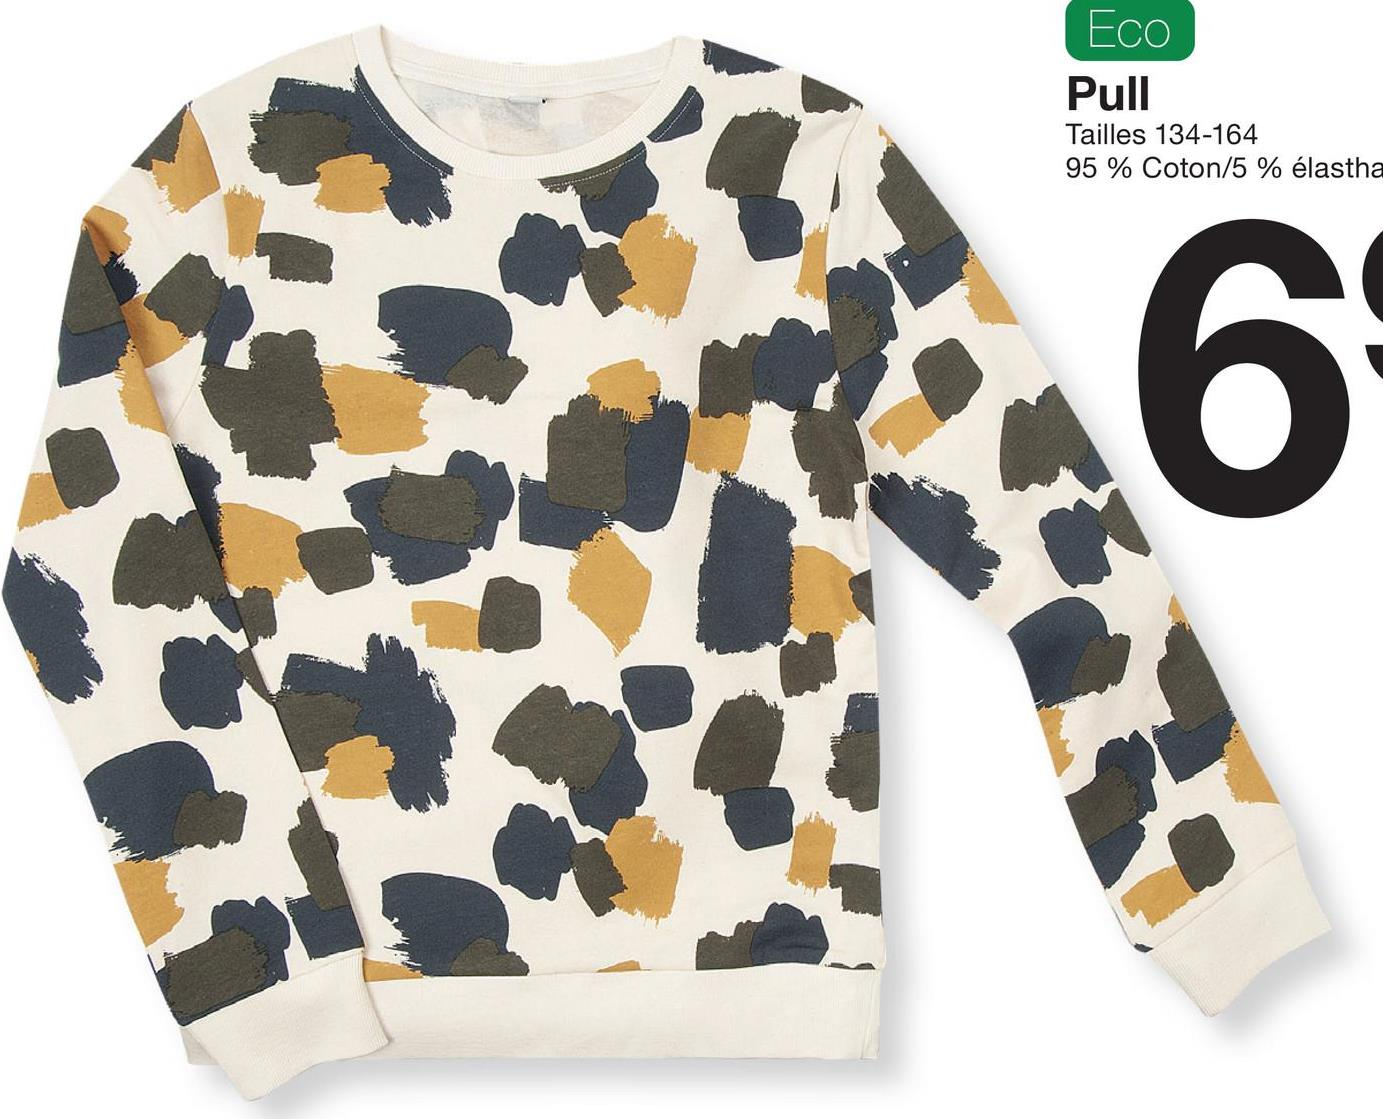 Eco Pull Tailles 134-164 95 % Coton/5 % élastha 6